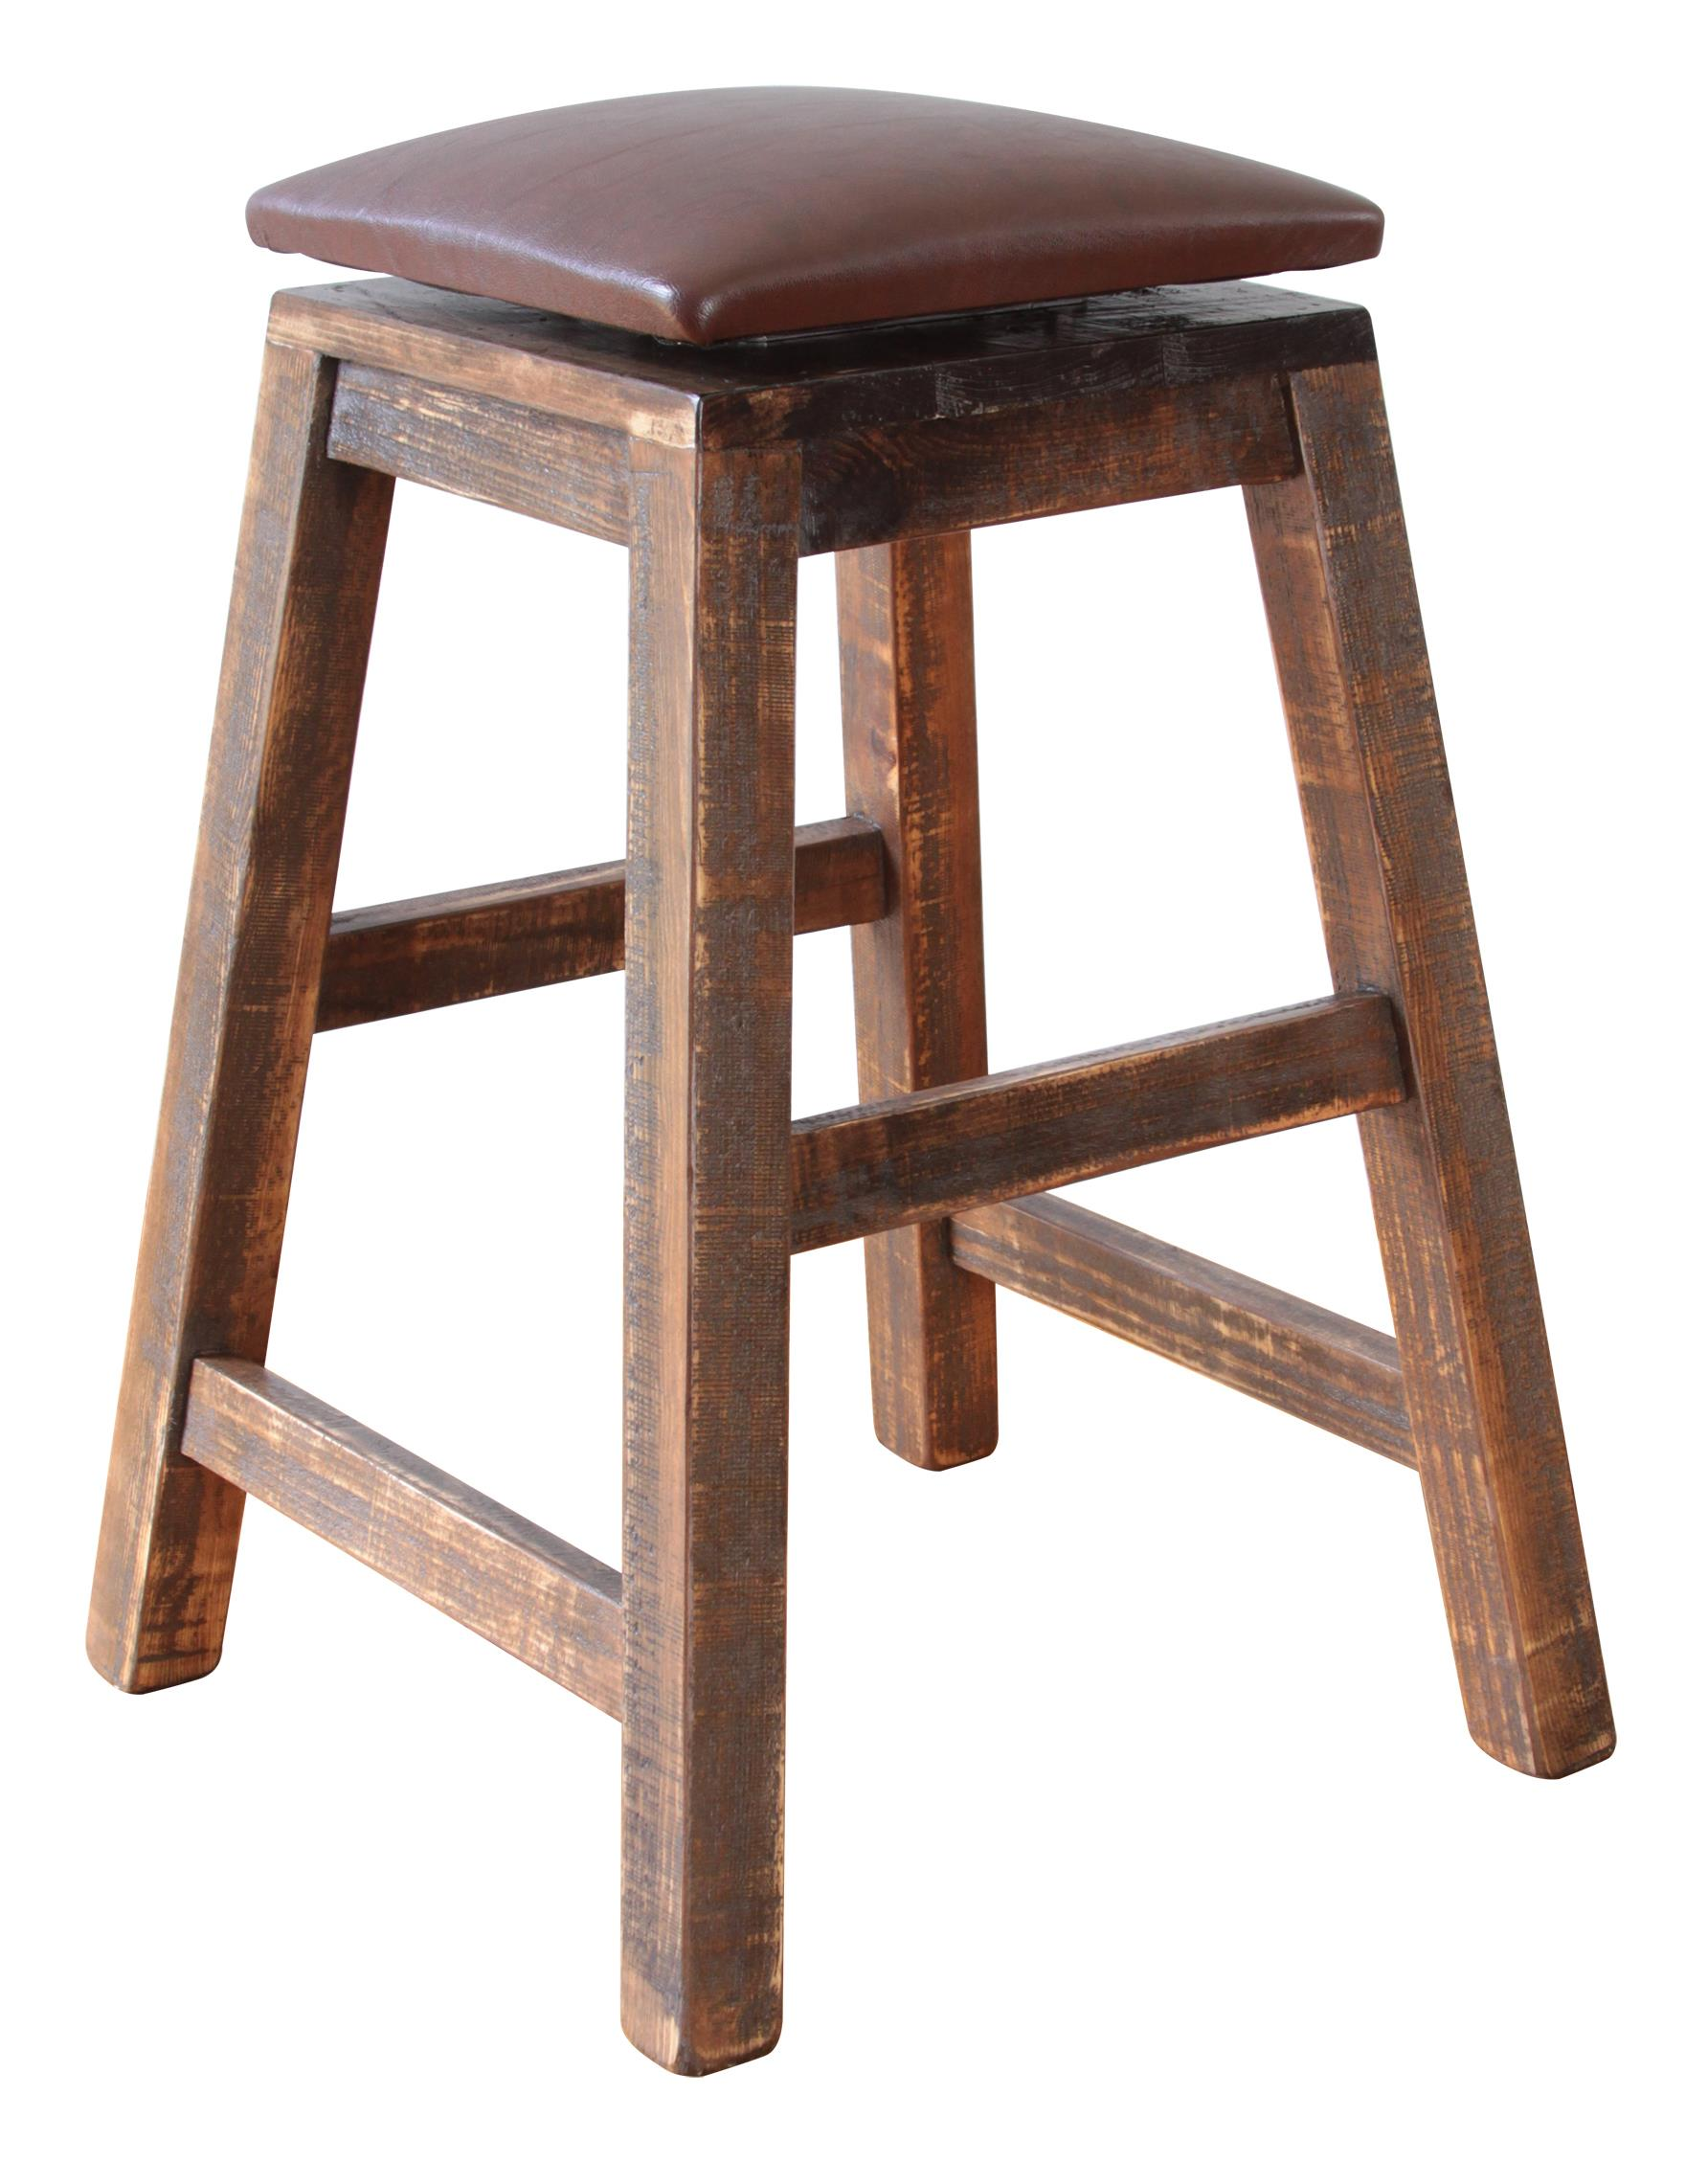 "900 Antique 30"" Swivel Stool by International Furniture Direct at Upper Room Home Furnishings"